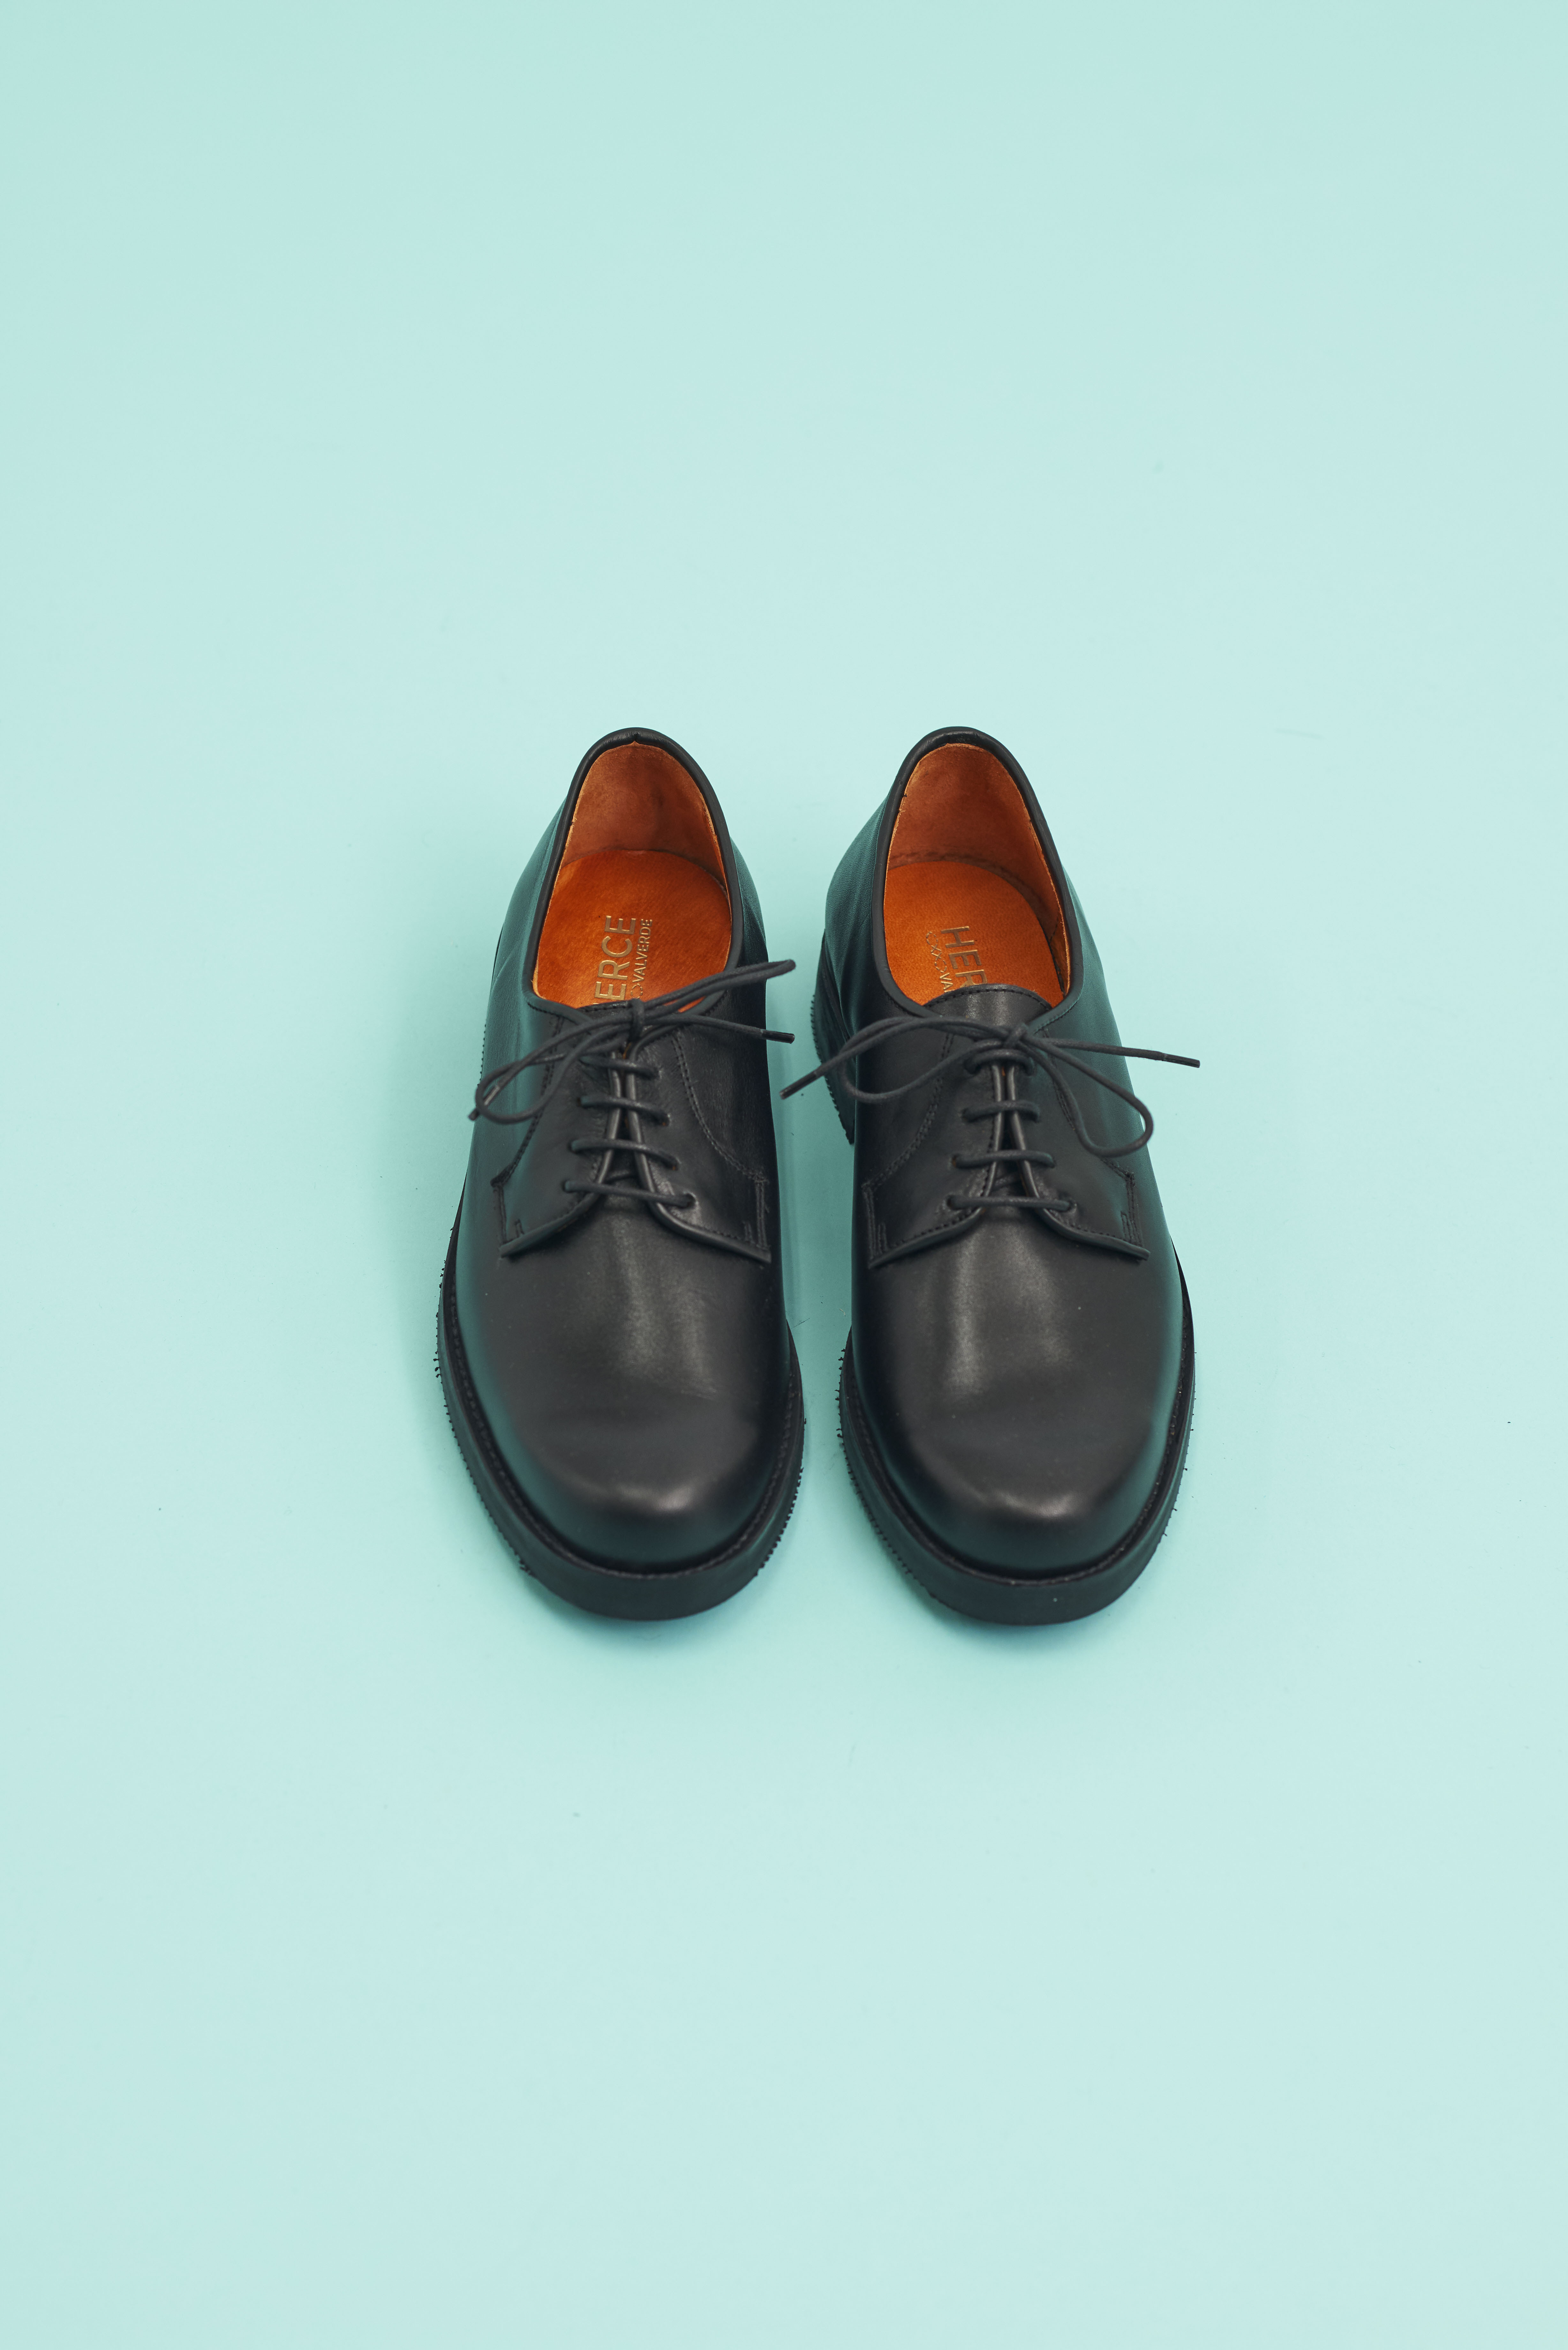 HERCE VALVERDE Leather Shoes